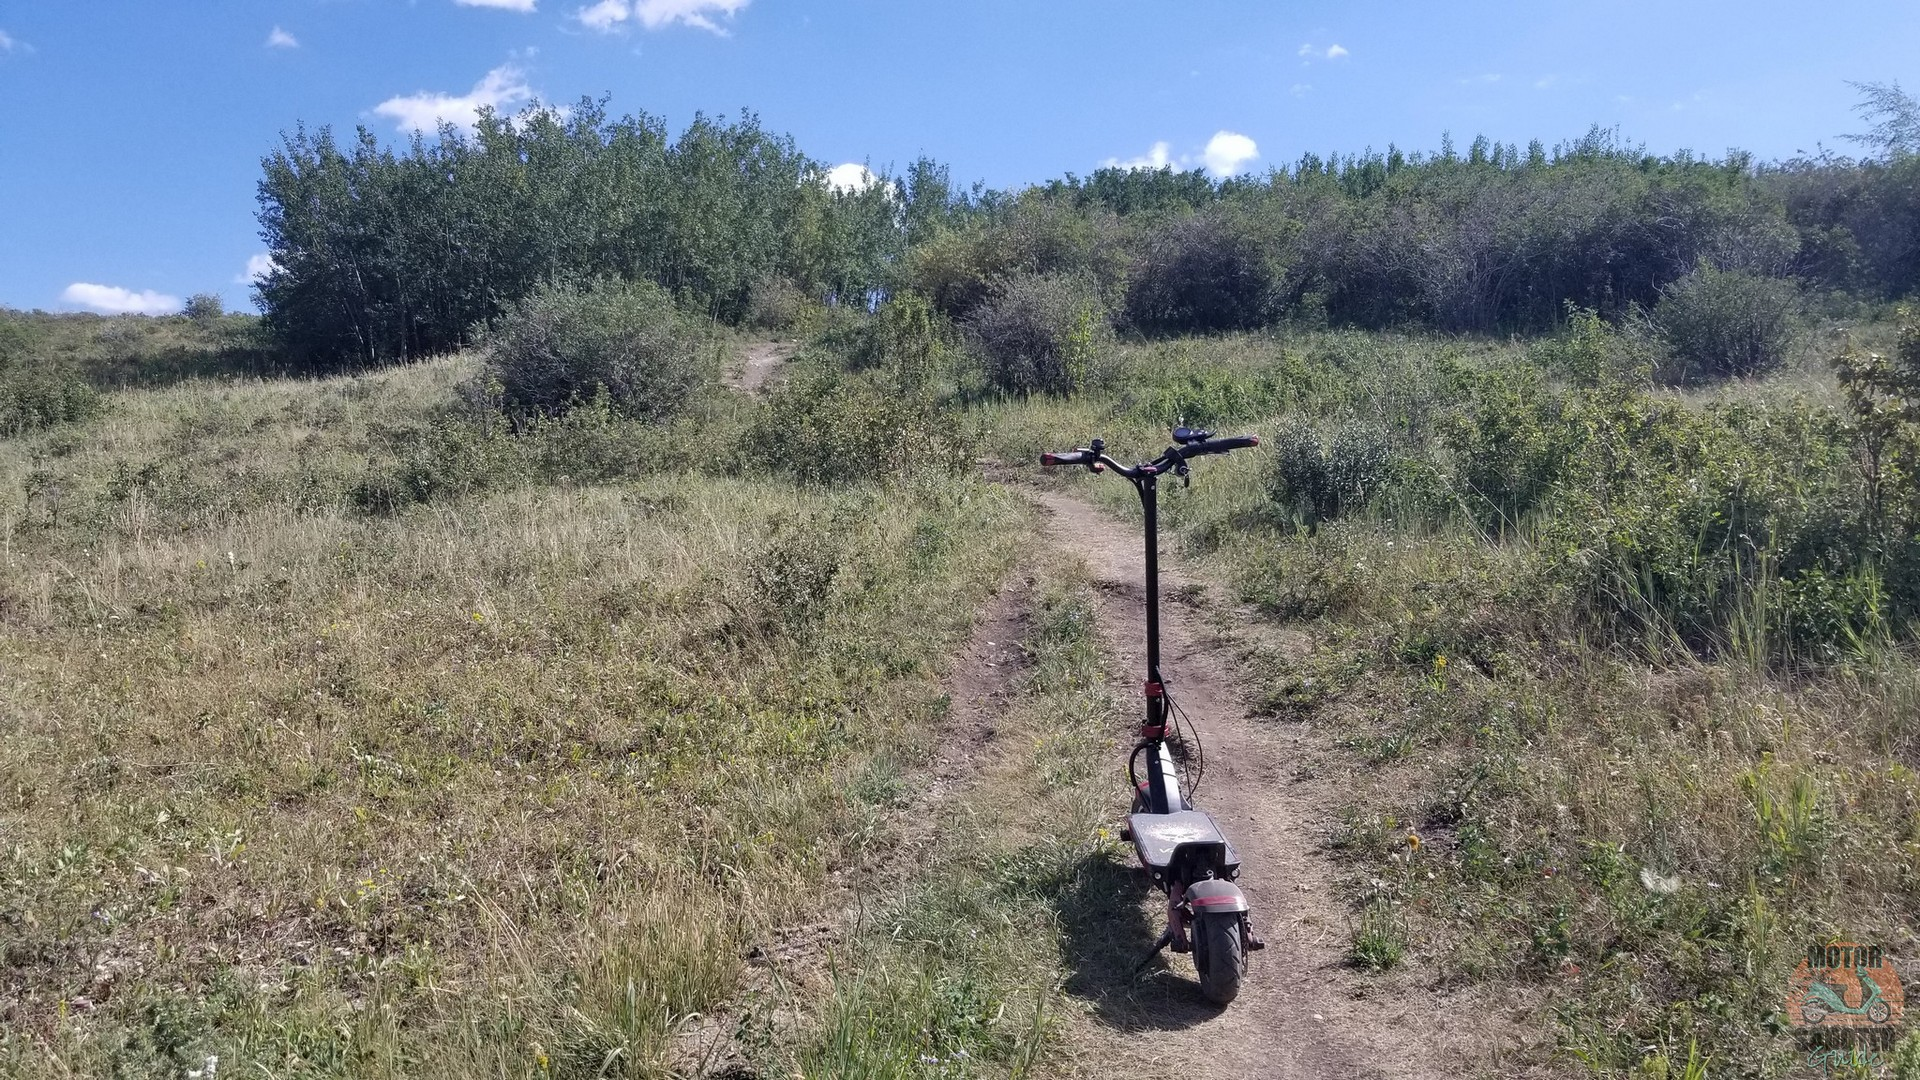 Eagle One scooter making its way up a dirt path incline at Nose Hill Park